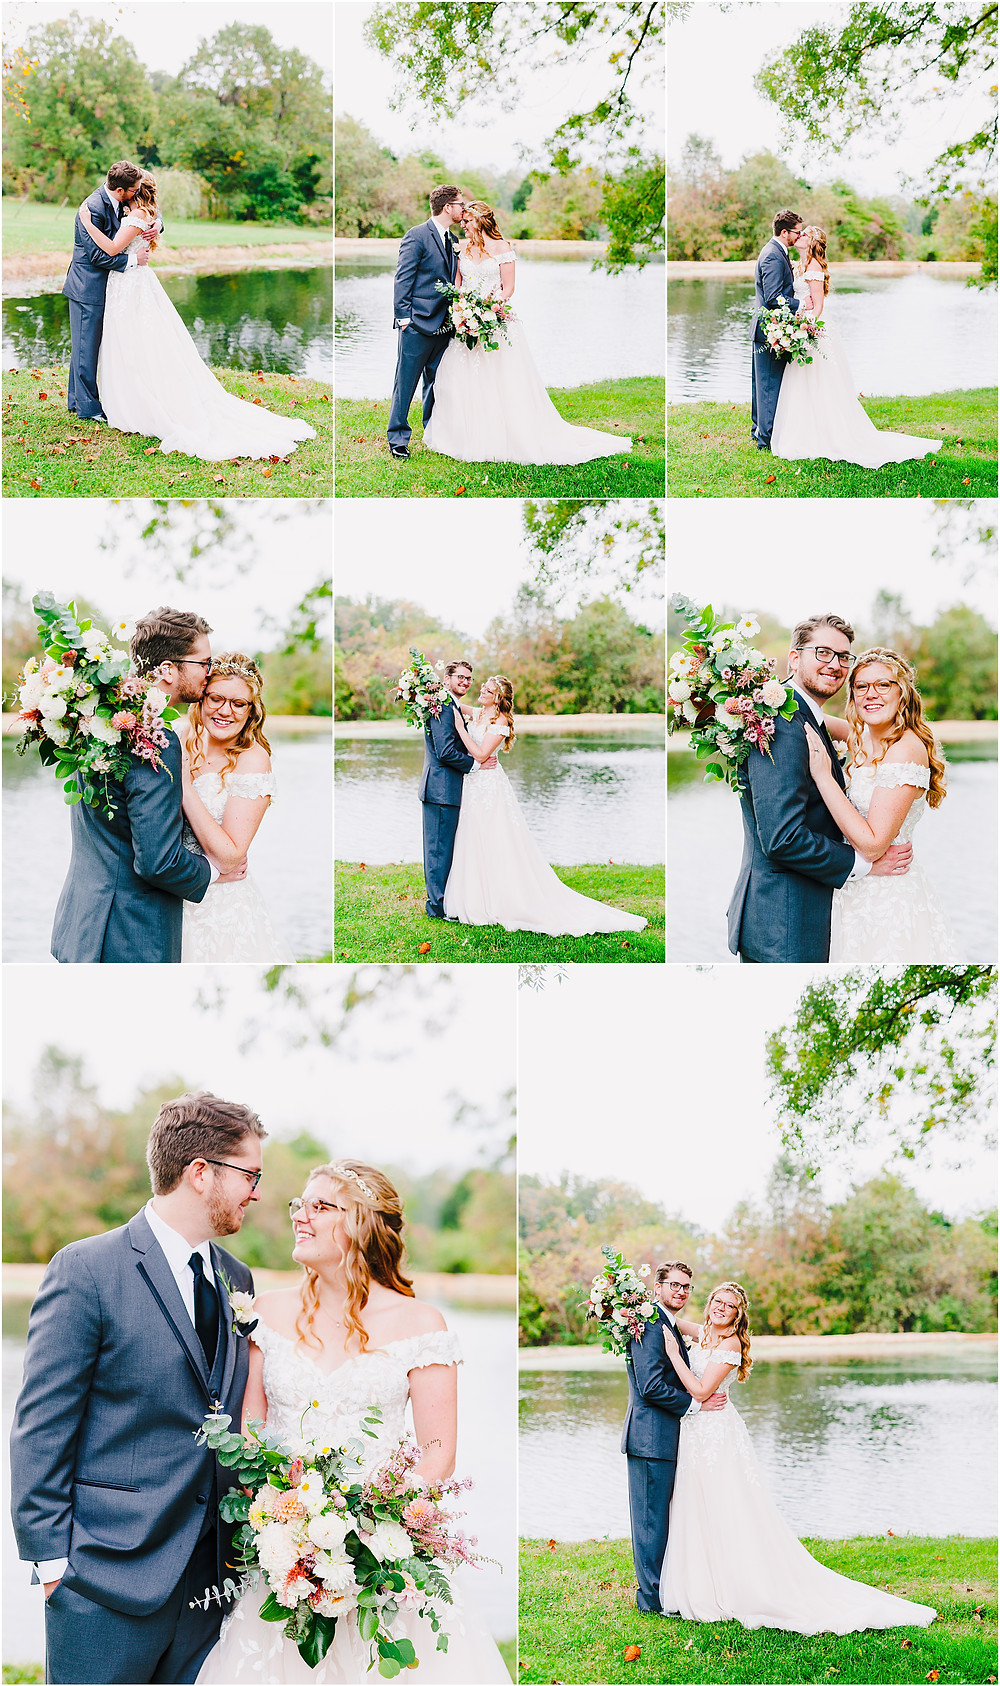 Fall bridal portraits by Rosewood Farms pond. Maryland Wedding Photographer